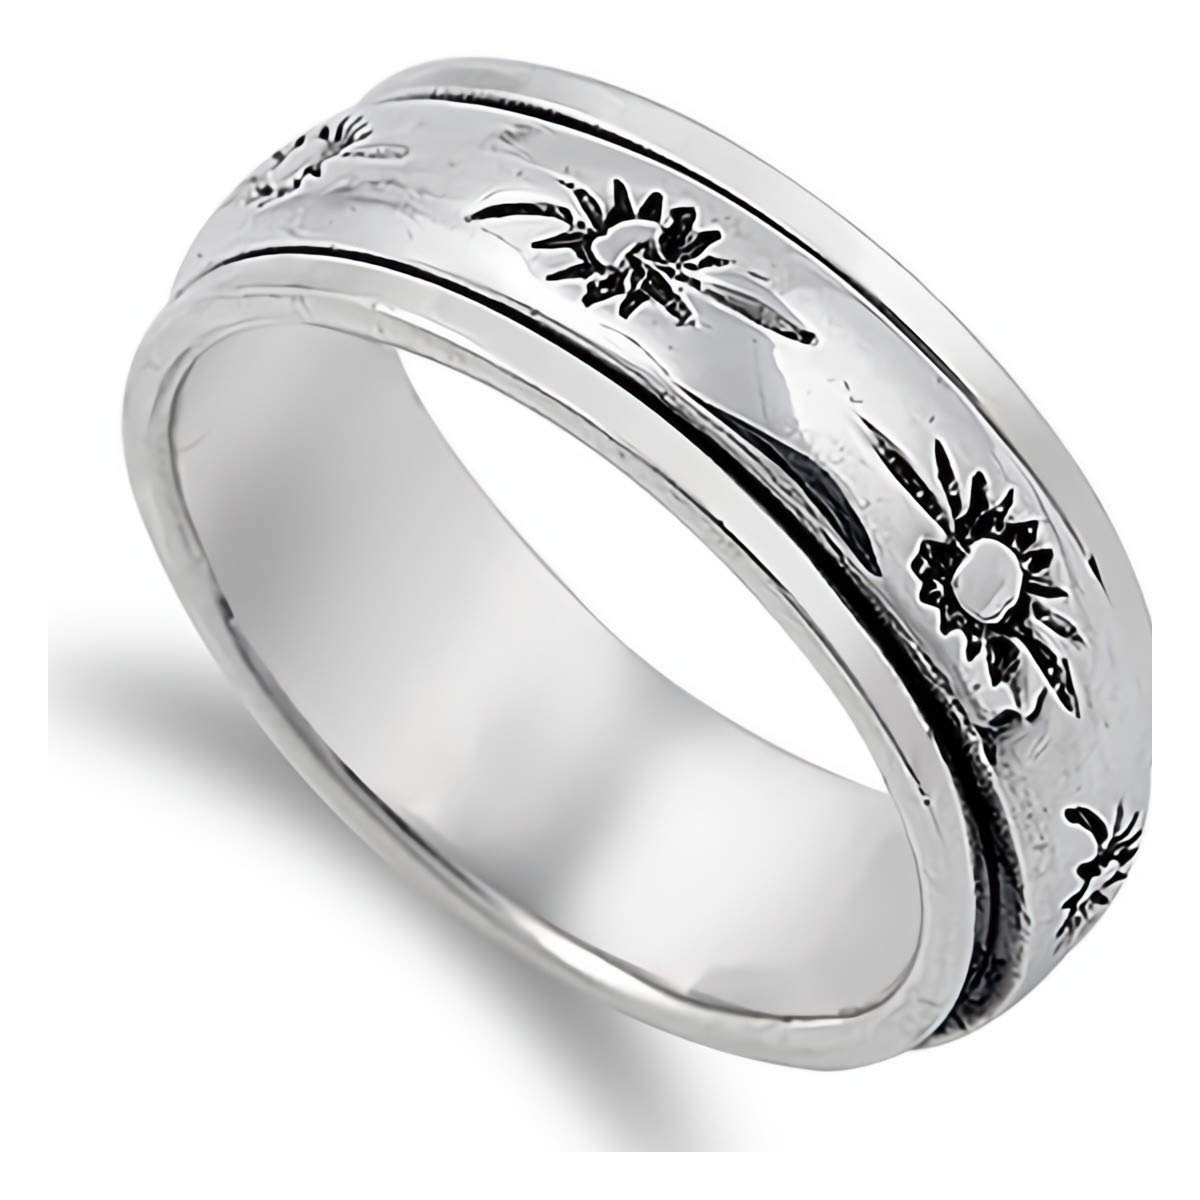 Spinner Glitzs Jewels 925 Sterling Silver Ring Cute Jewelry Gift for Women in Gift Box